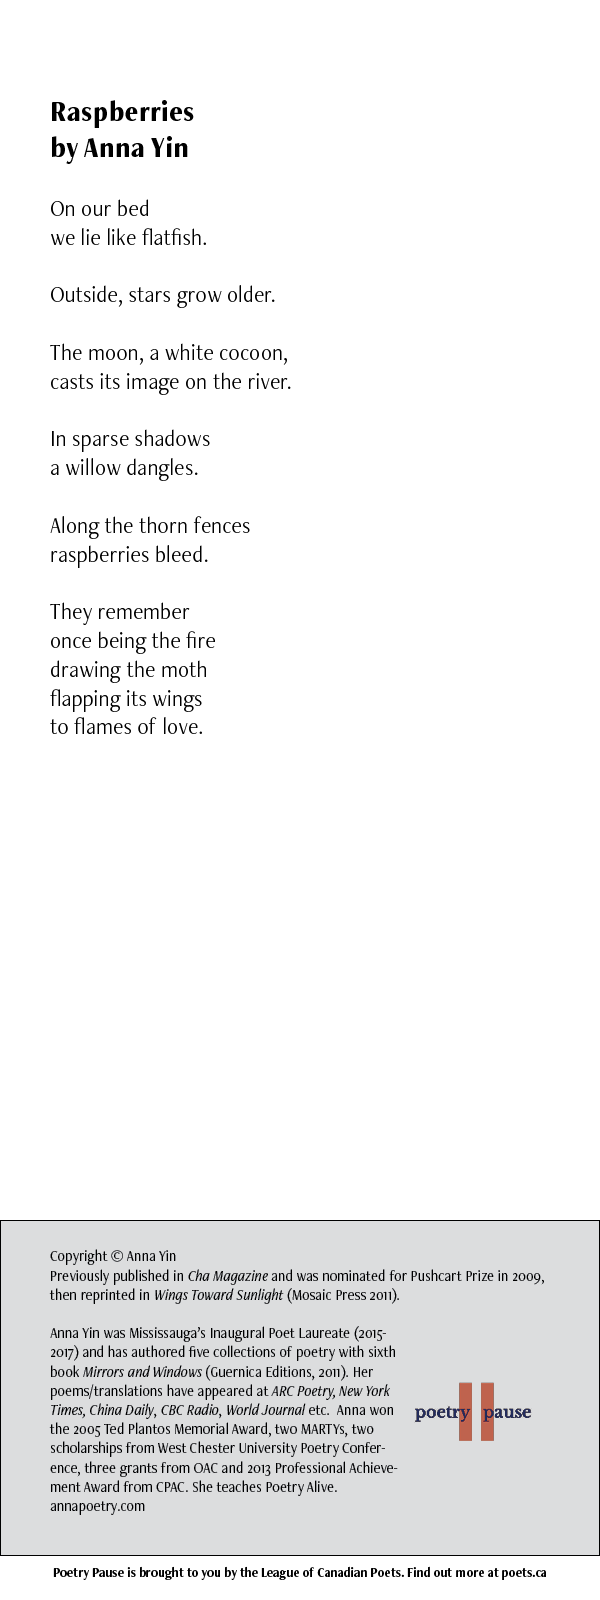 POEM NAME: Raspberries AUTHOR NAME: Anna Yin POEM: On our bed we lie like flatfish. Outside, stars grow older. The moon, a white cocoon, casts its image on the river. In sparse shadows a willow dangles. Along the thorn fences raspberries bleed. They remember once being the fire drawing the moth flapping its wings to flames of love. END OF POEM. CREDITS: Copyright © Anna Yin Previously published in Cha Magazine and was nominated for Pushcart Prize in 2009, then reprinted in Wings Toward Sunlight (Mosaic Press 2011). Anna Yin was Mississauga's Inaugural Poet Laureate (2015-2017) and has authored five collections of poetry with sixth book Mirrors and Windows (Guernica Editions, 2011). Her poems/translations have appeared at ARC Poetry, New York Times, China Daily, CBC Radio, World Journal etc. Anna won the 2005 Ted Plantos Memorial Award, two MARTYs, two scholarships from West Chester University Poetry Conference, three grants from OAC and 2013 Professional Achievement Award from CPAC. She teaches Poetry Alive. annapoetry.com